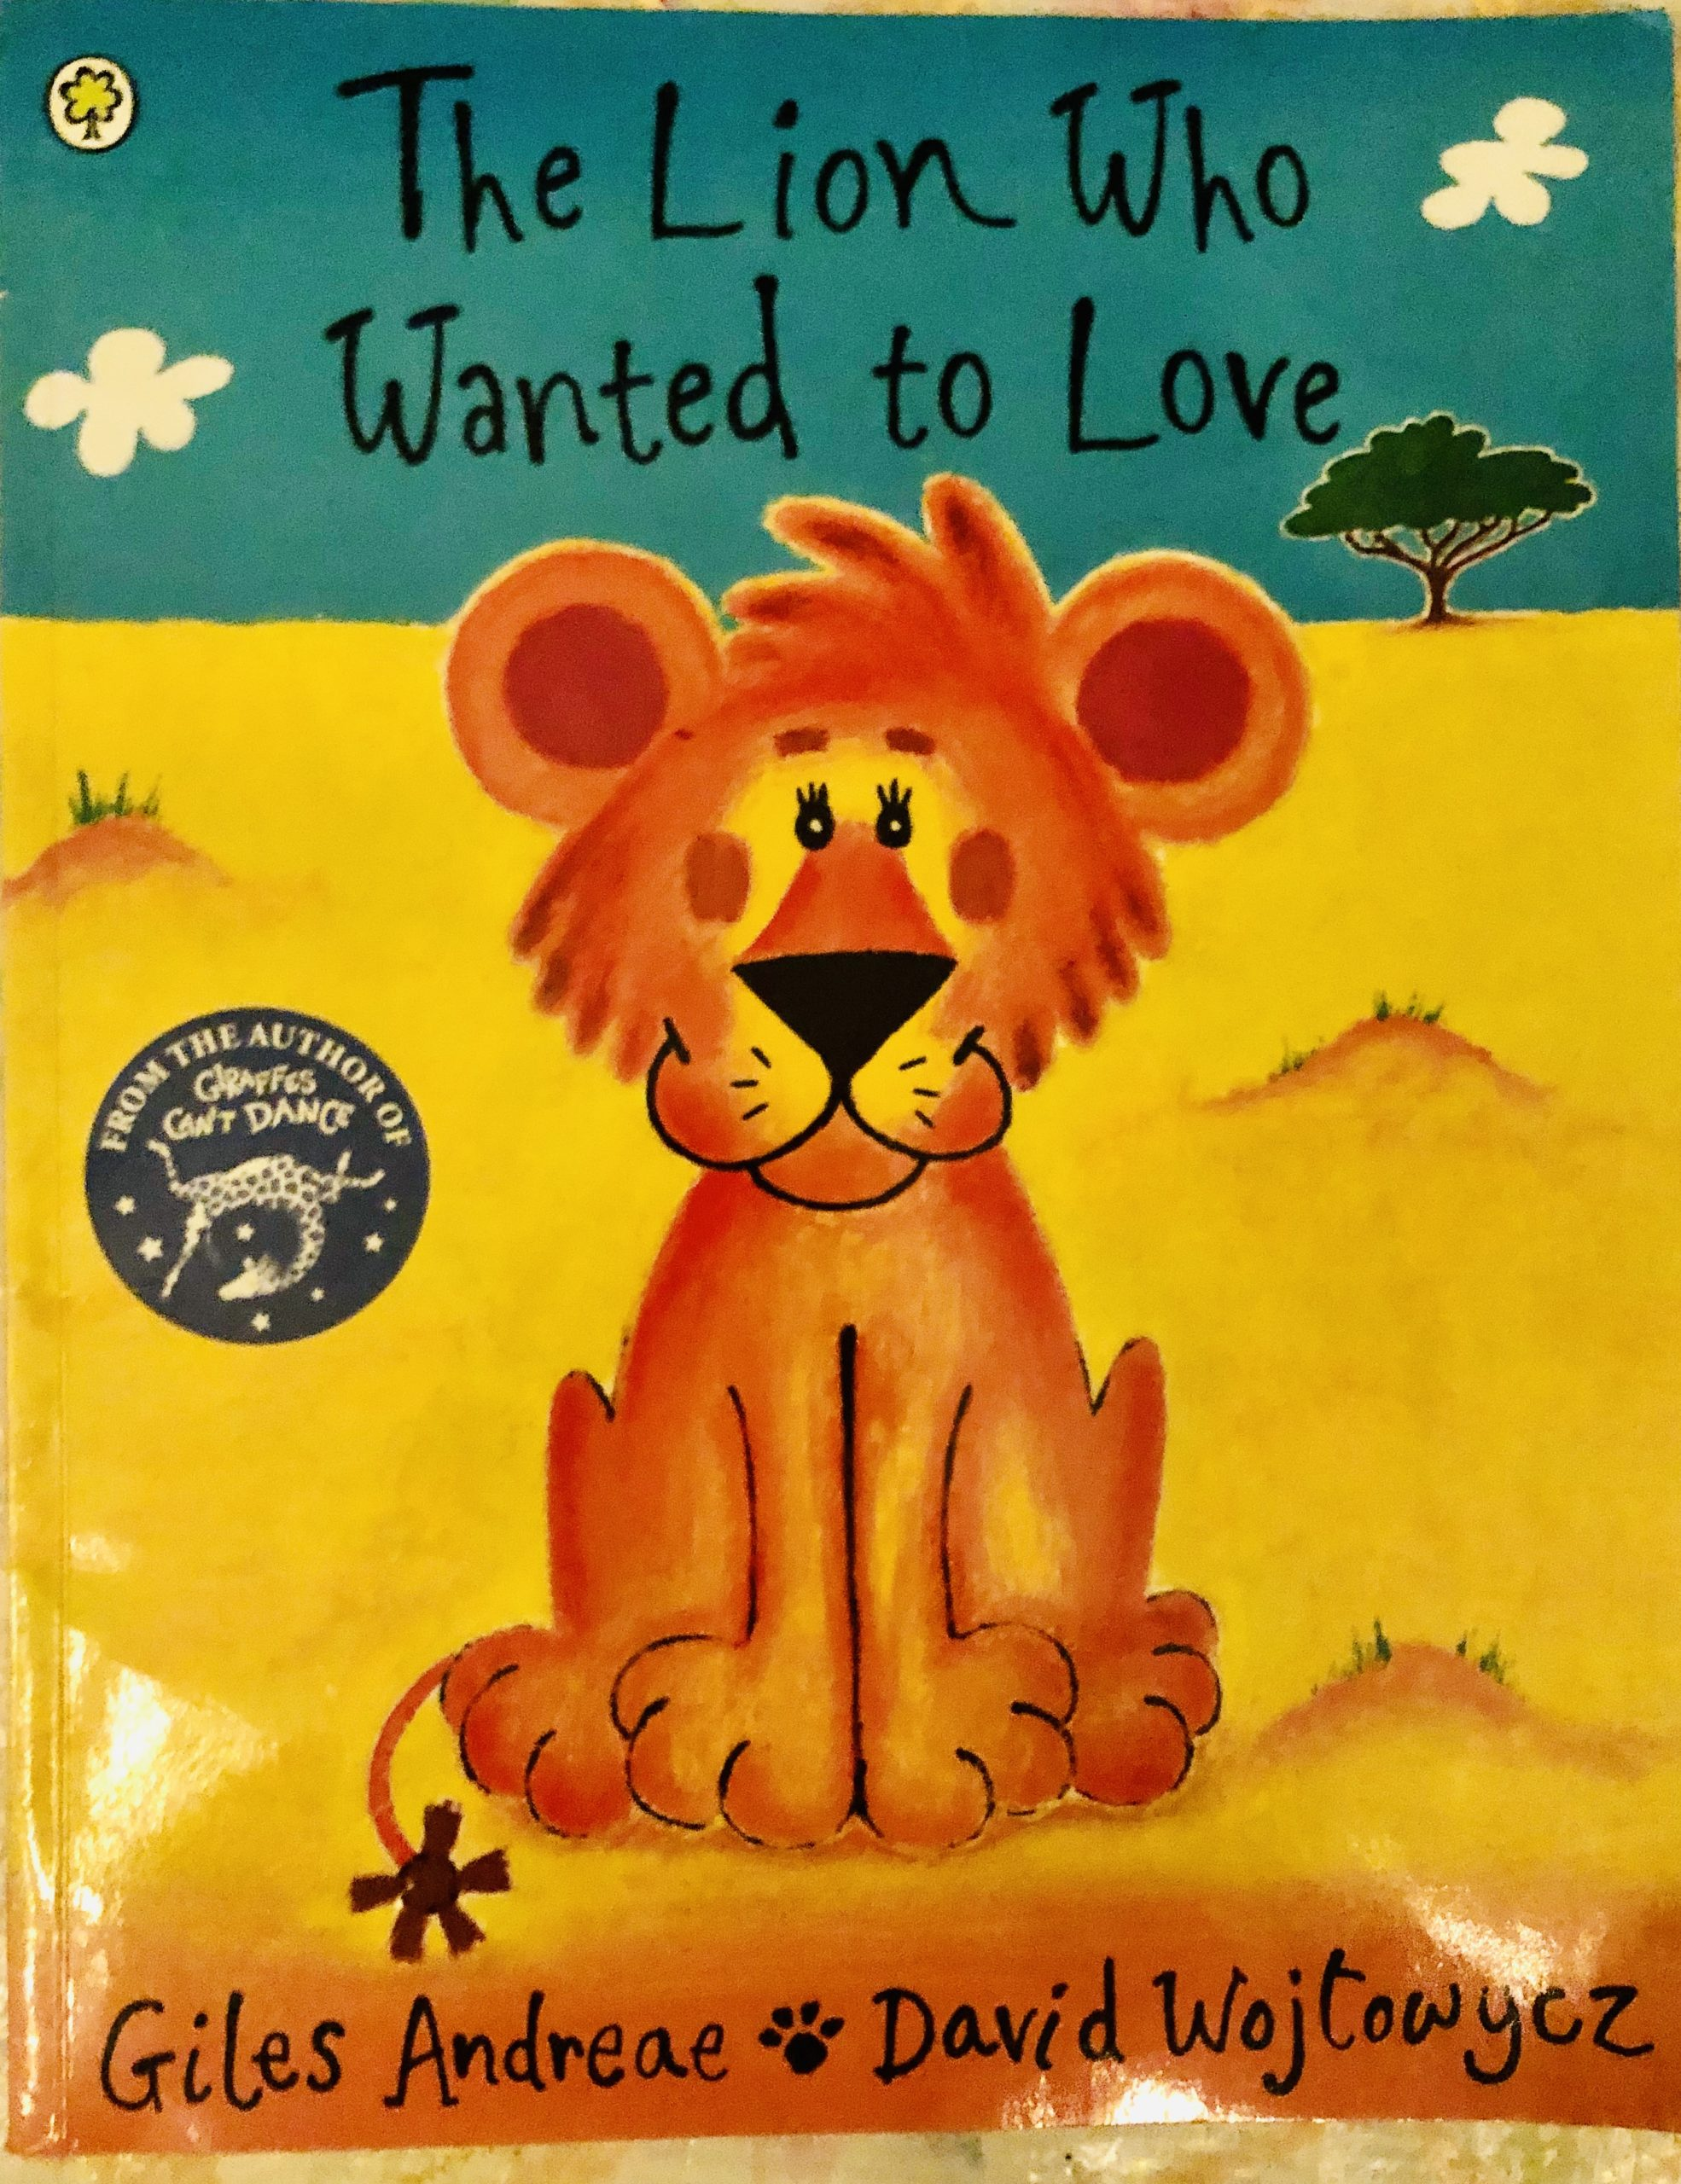 Review: The Lion Who Wanted To Love